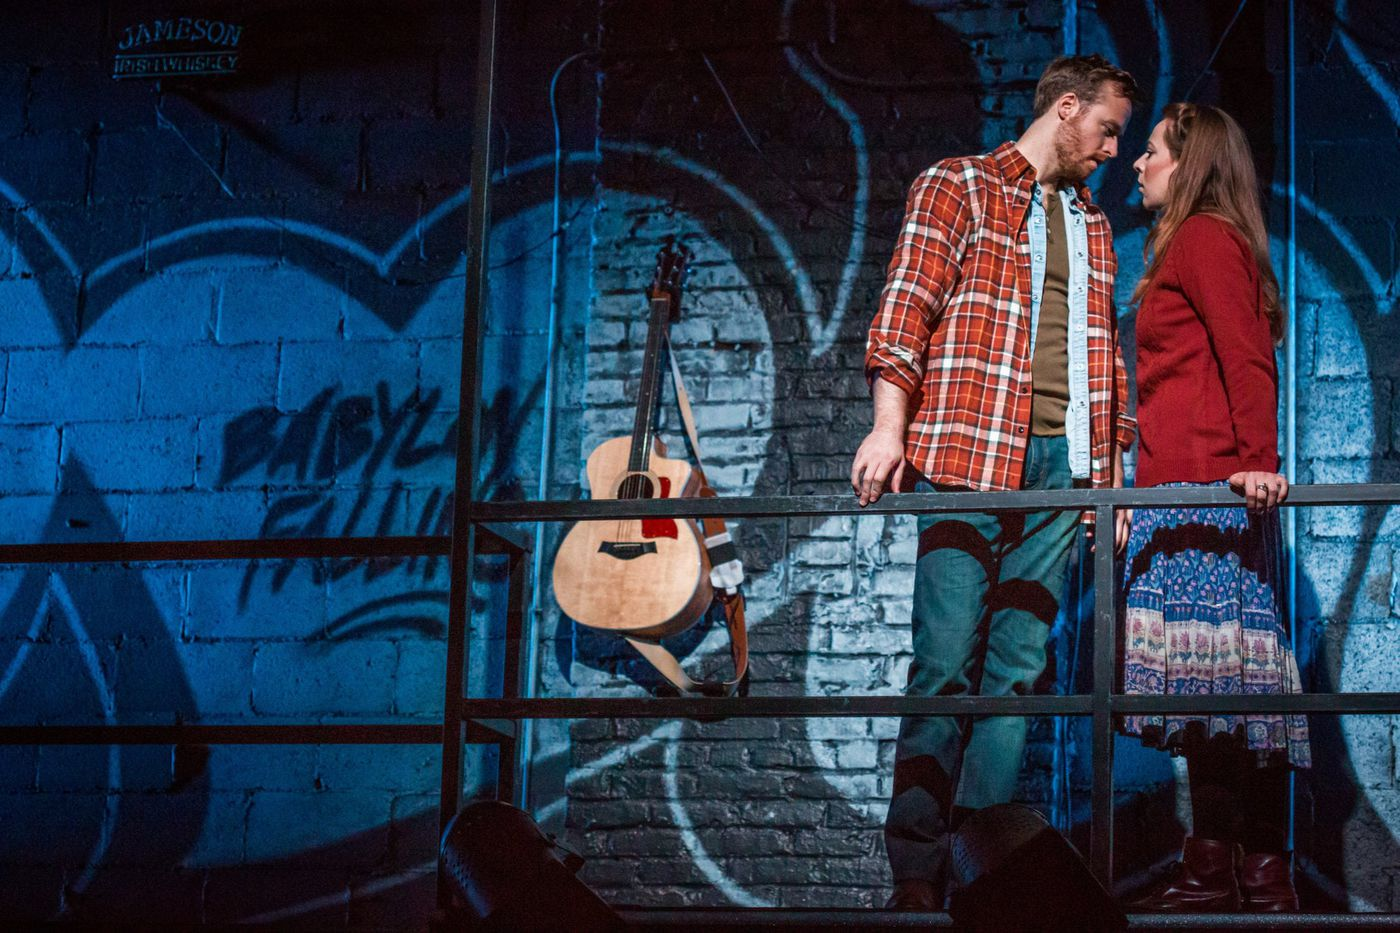 'Once' at the Arden: Lush, inventive, entrancing